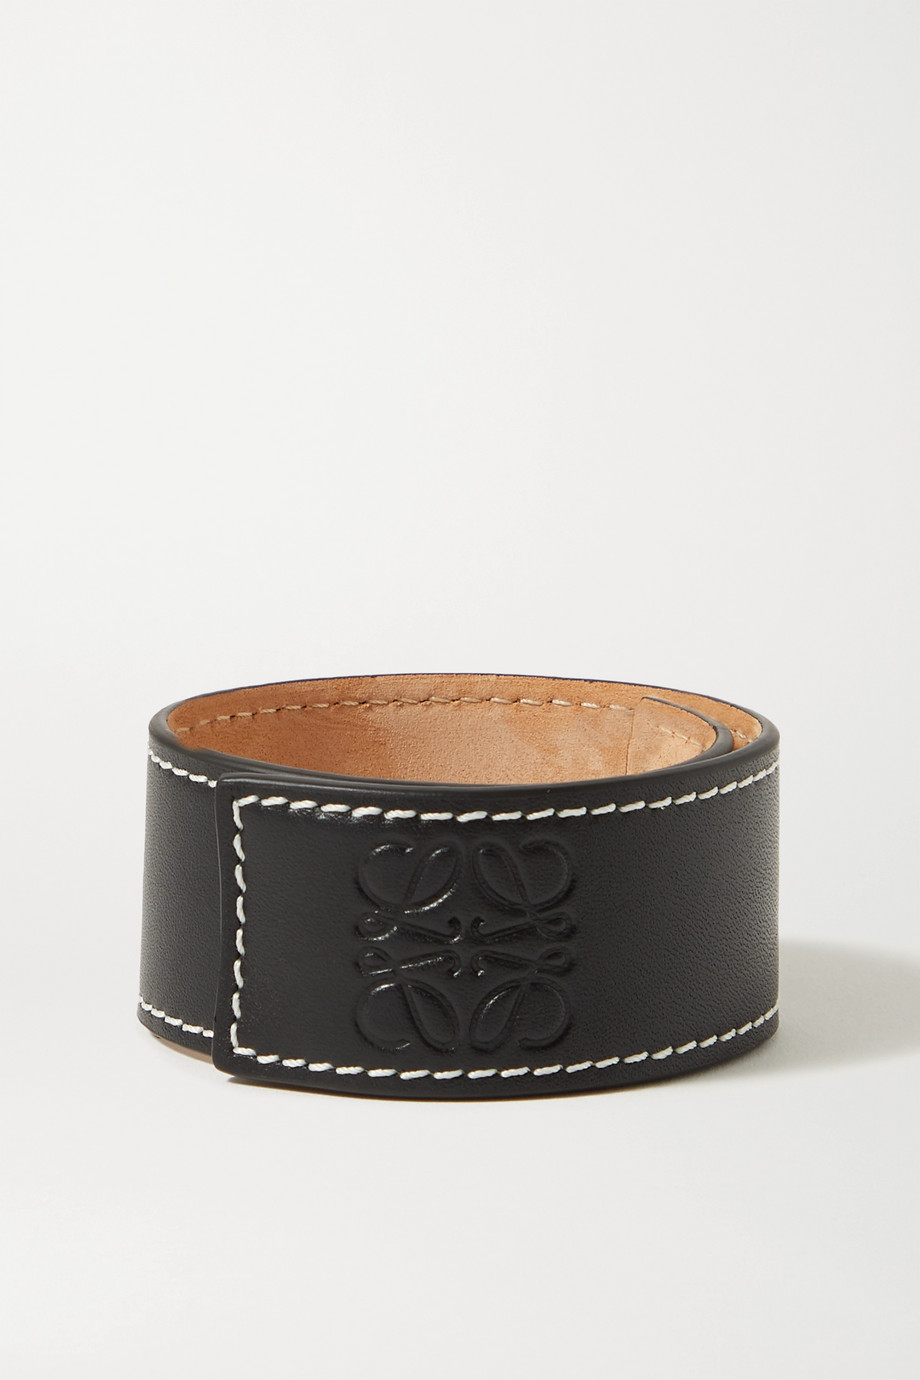 Loewe Embossed leather bracelet